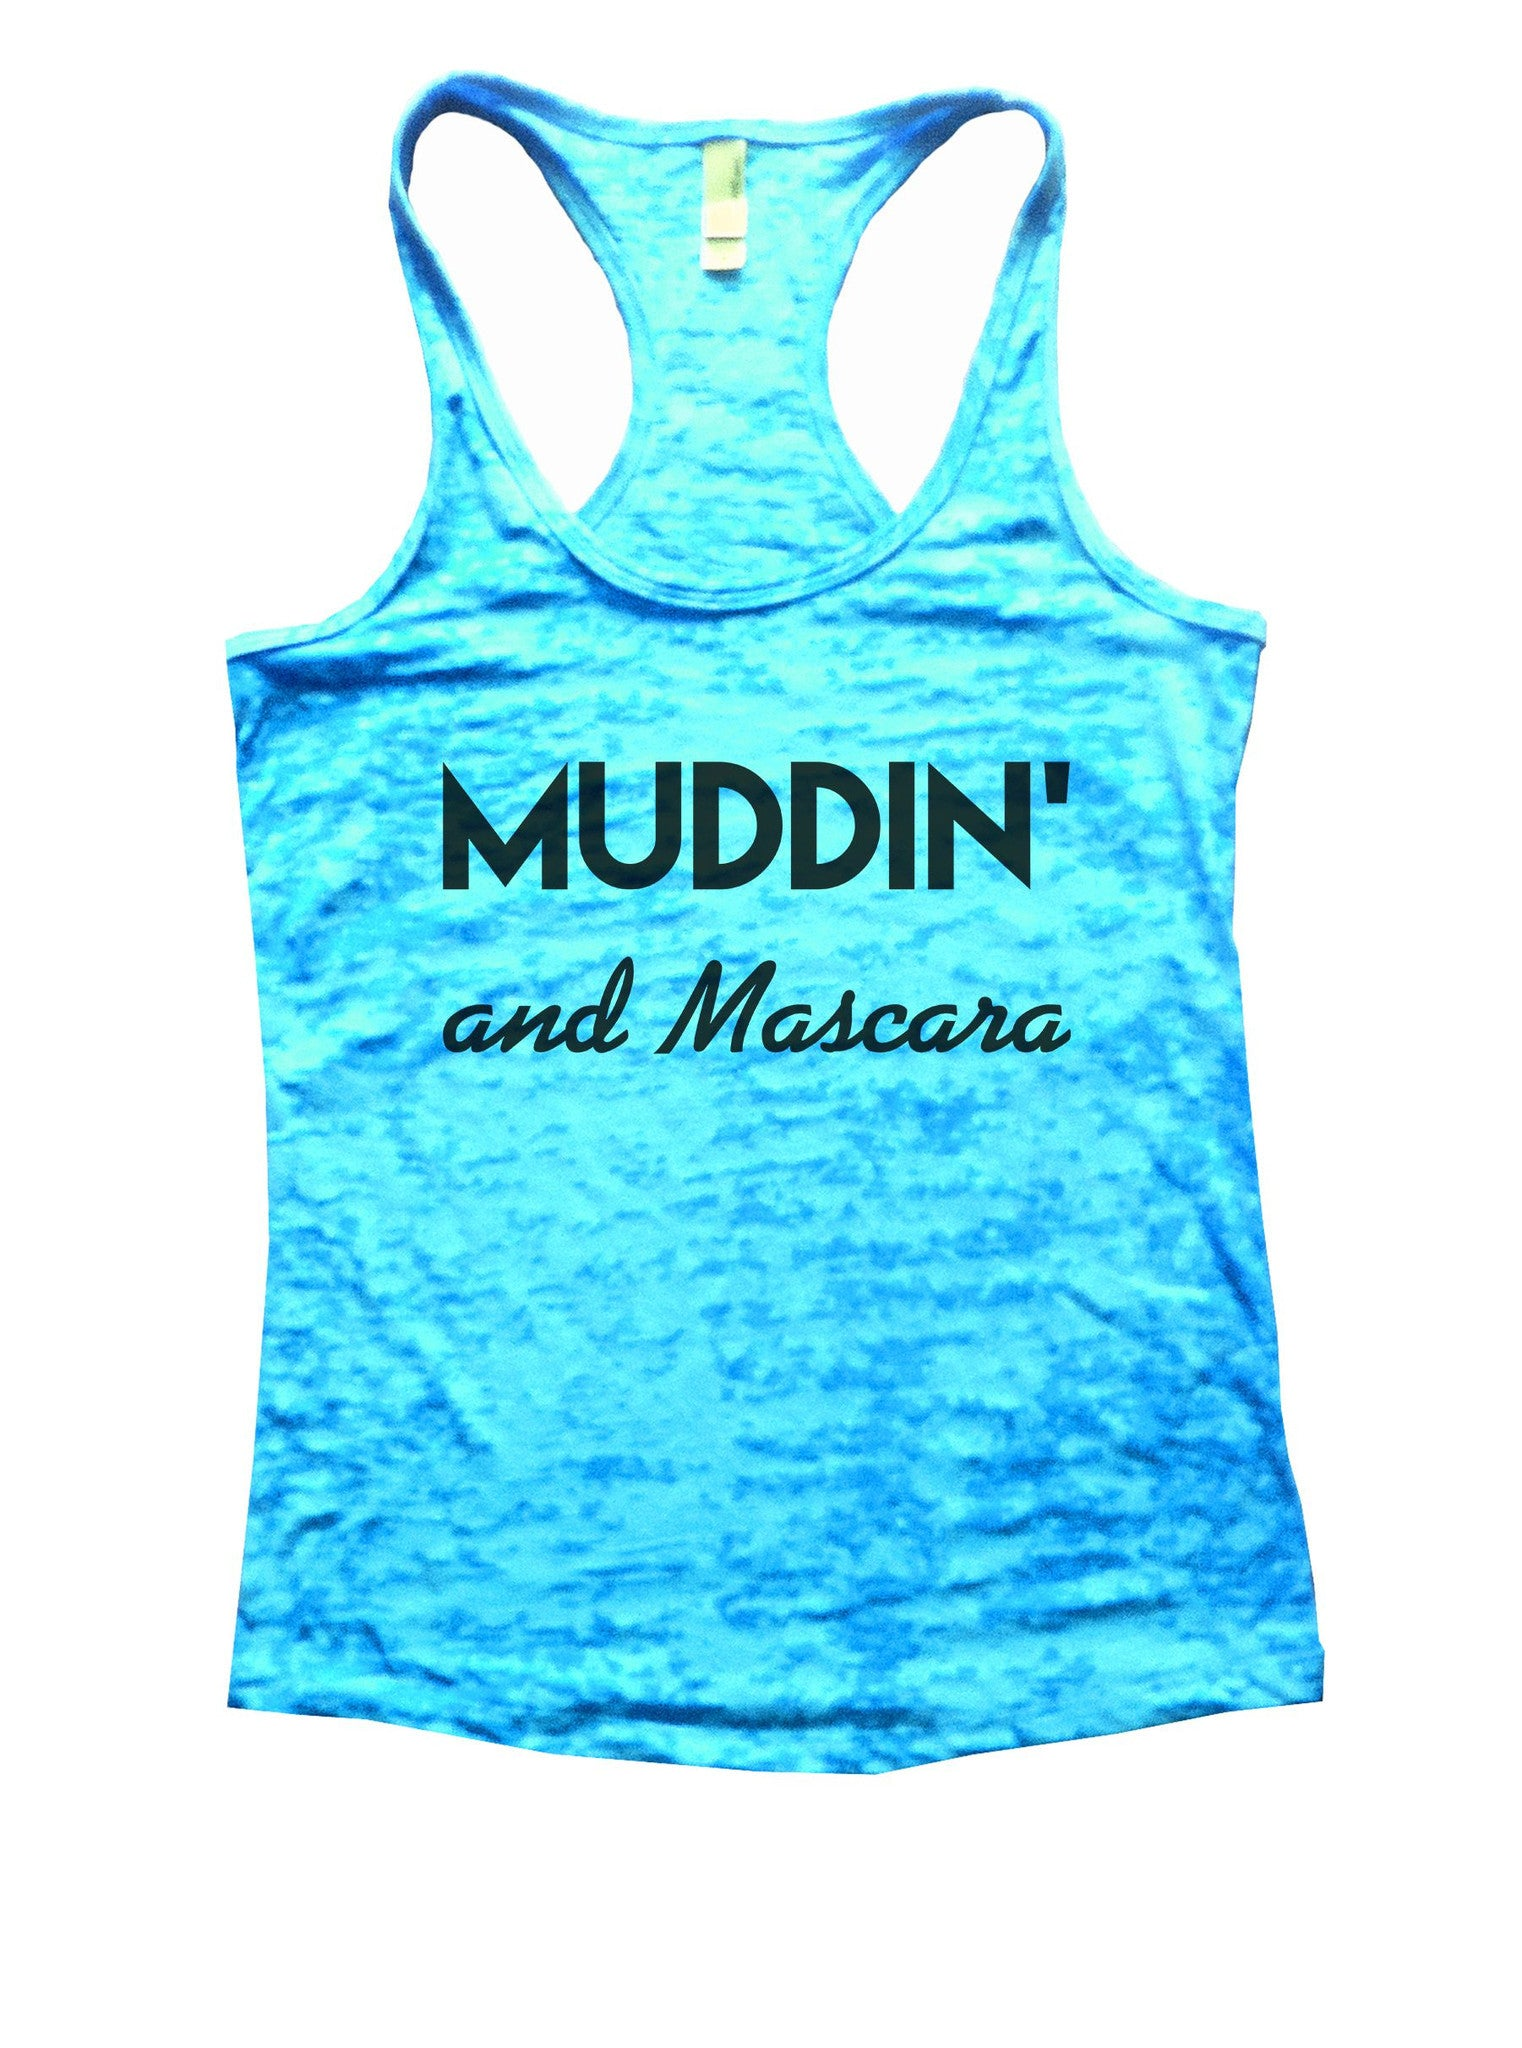 Muddin And Mascara Burnout Tank Top By BurnoutTankTops.com - 803 - Funny Shirts Tank Tops Burnouts and Triblends  - 4